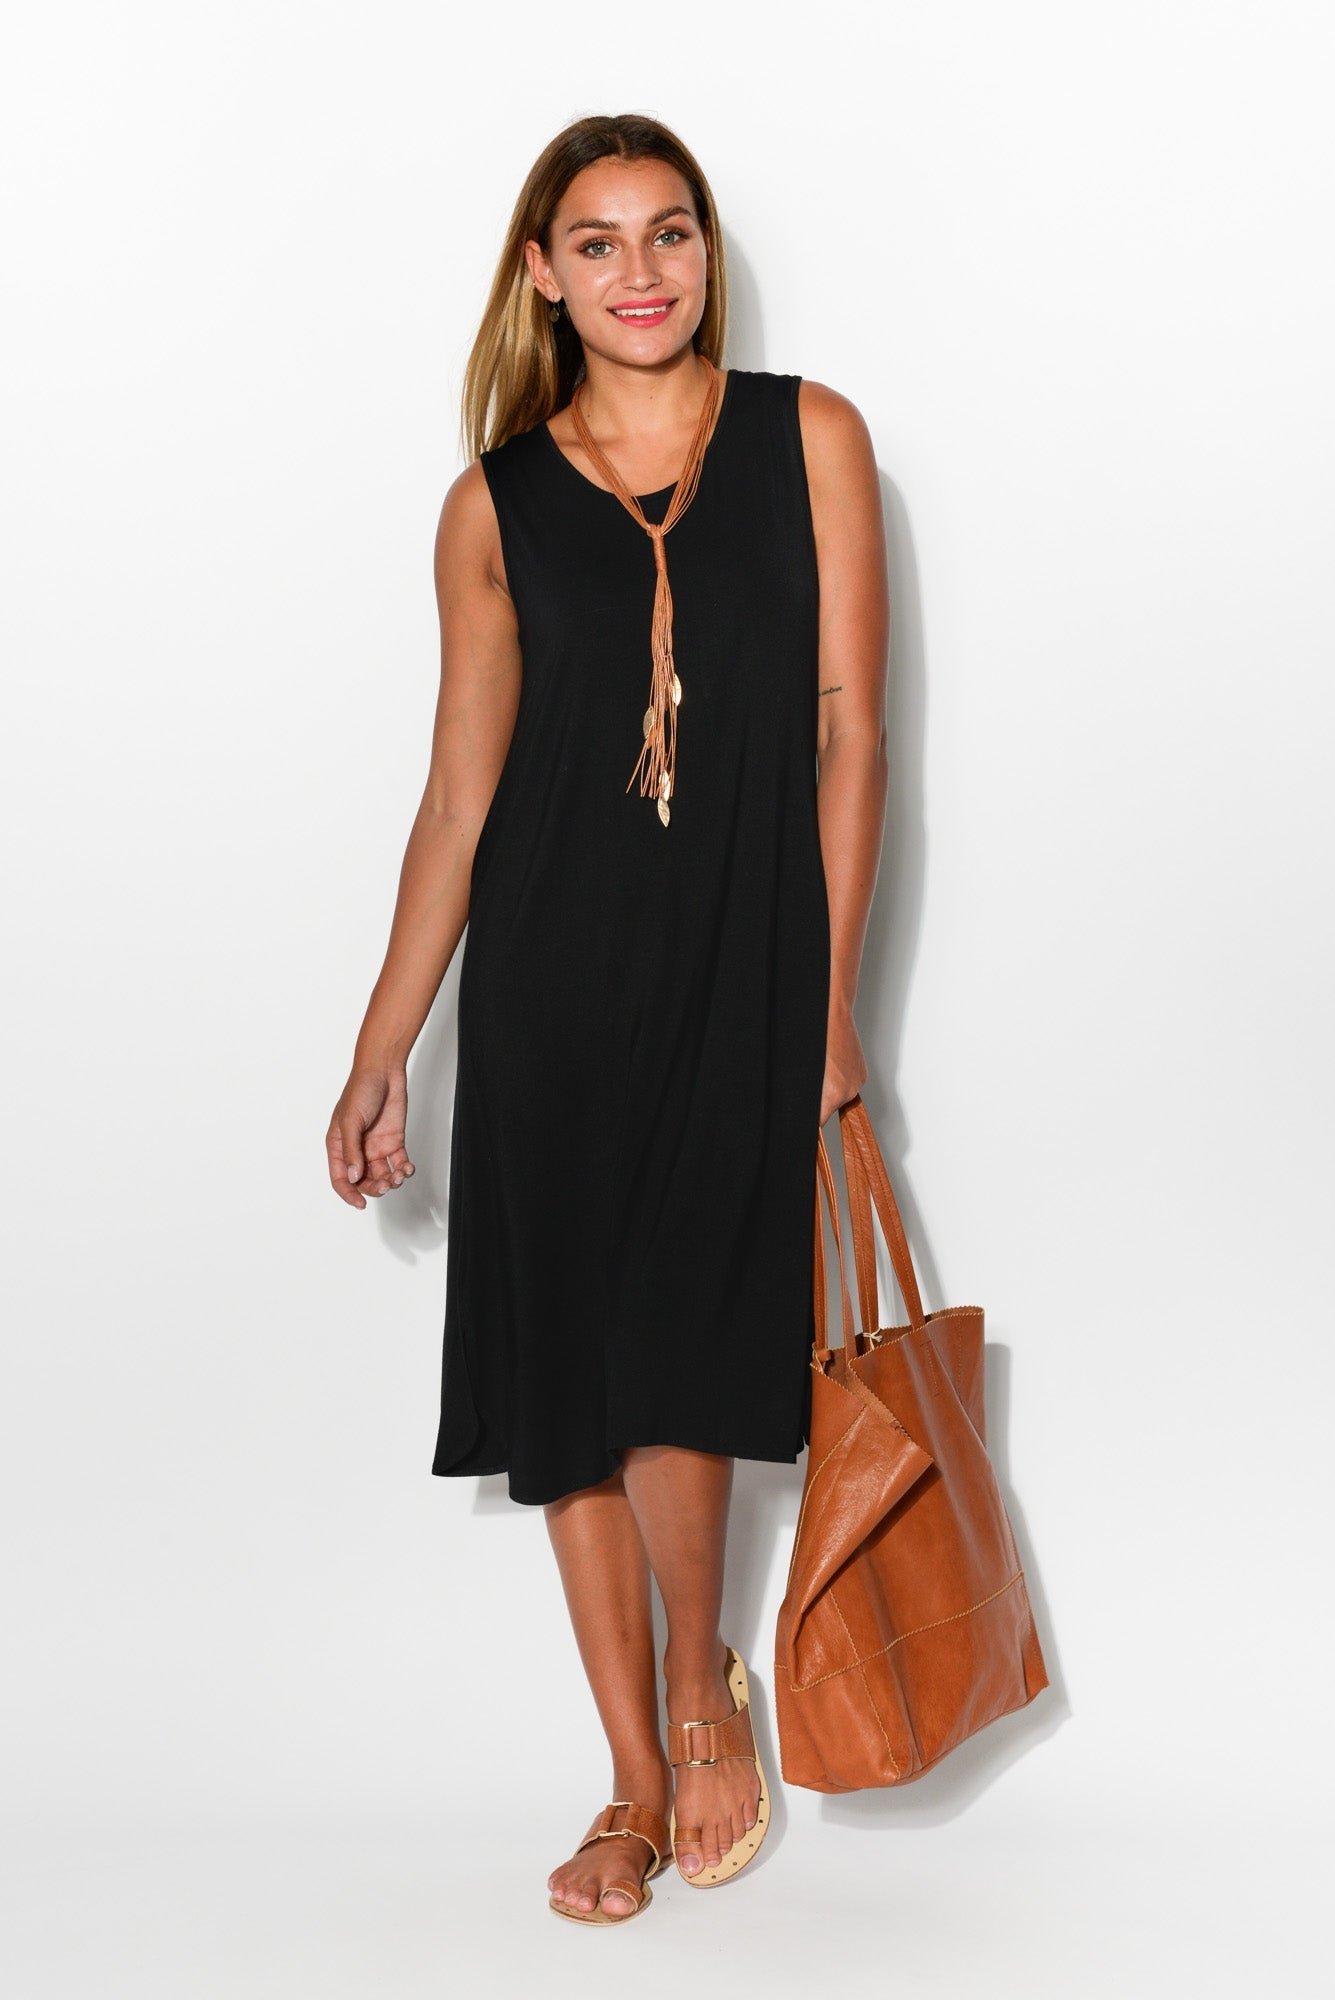 Tara Black Bamboo Tank Dress - Bamboo Whispers - Blue Bungalow Online